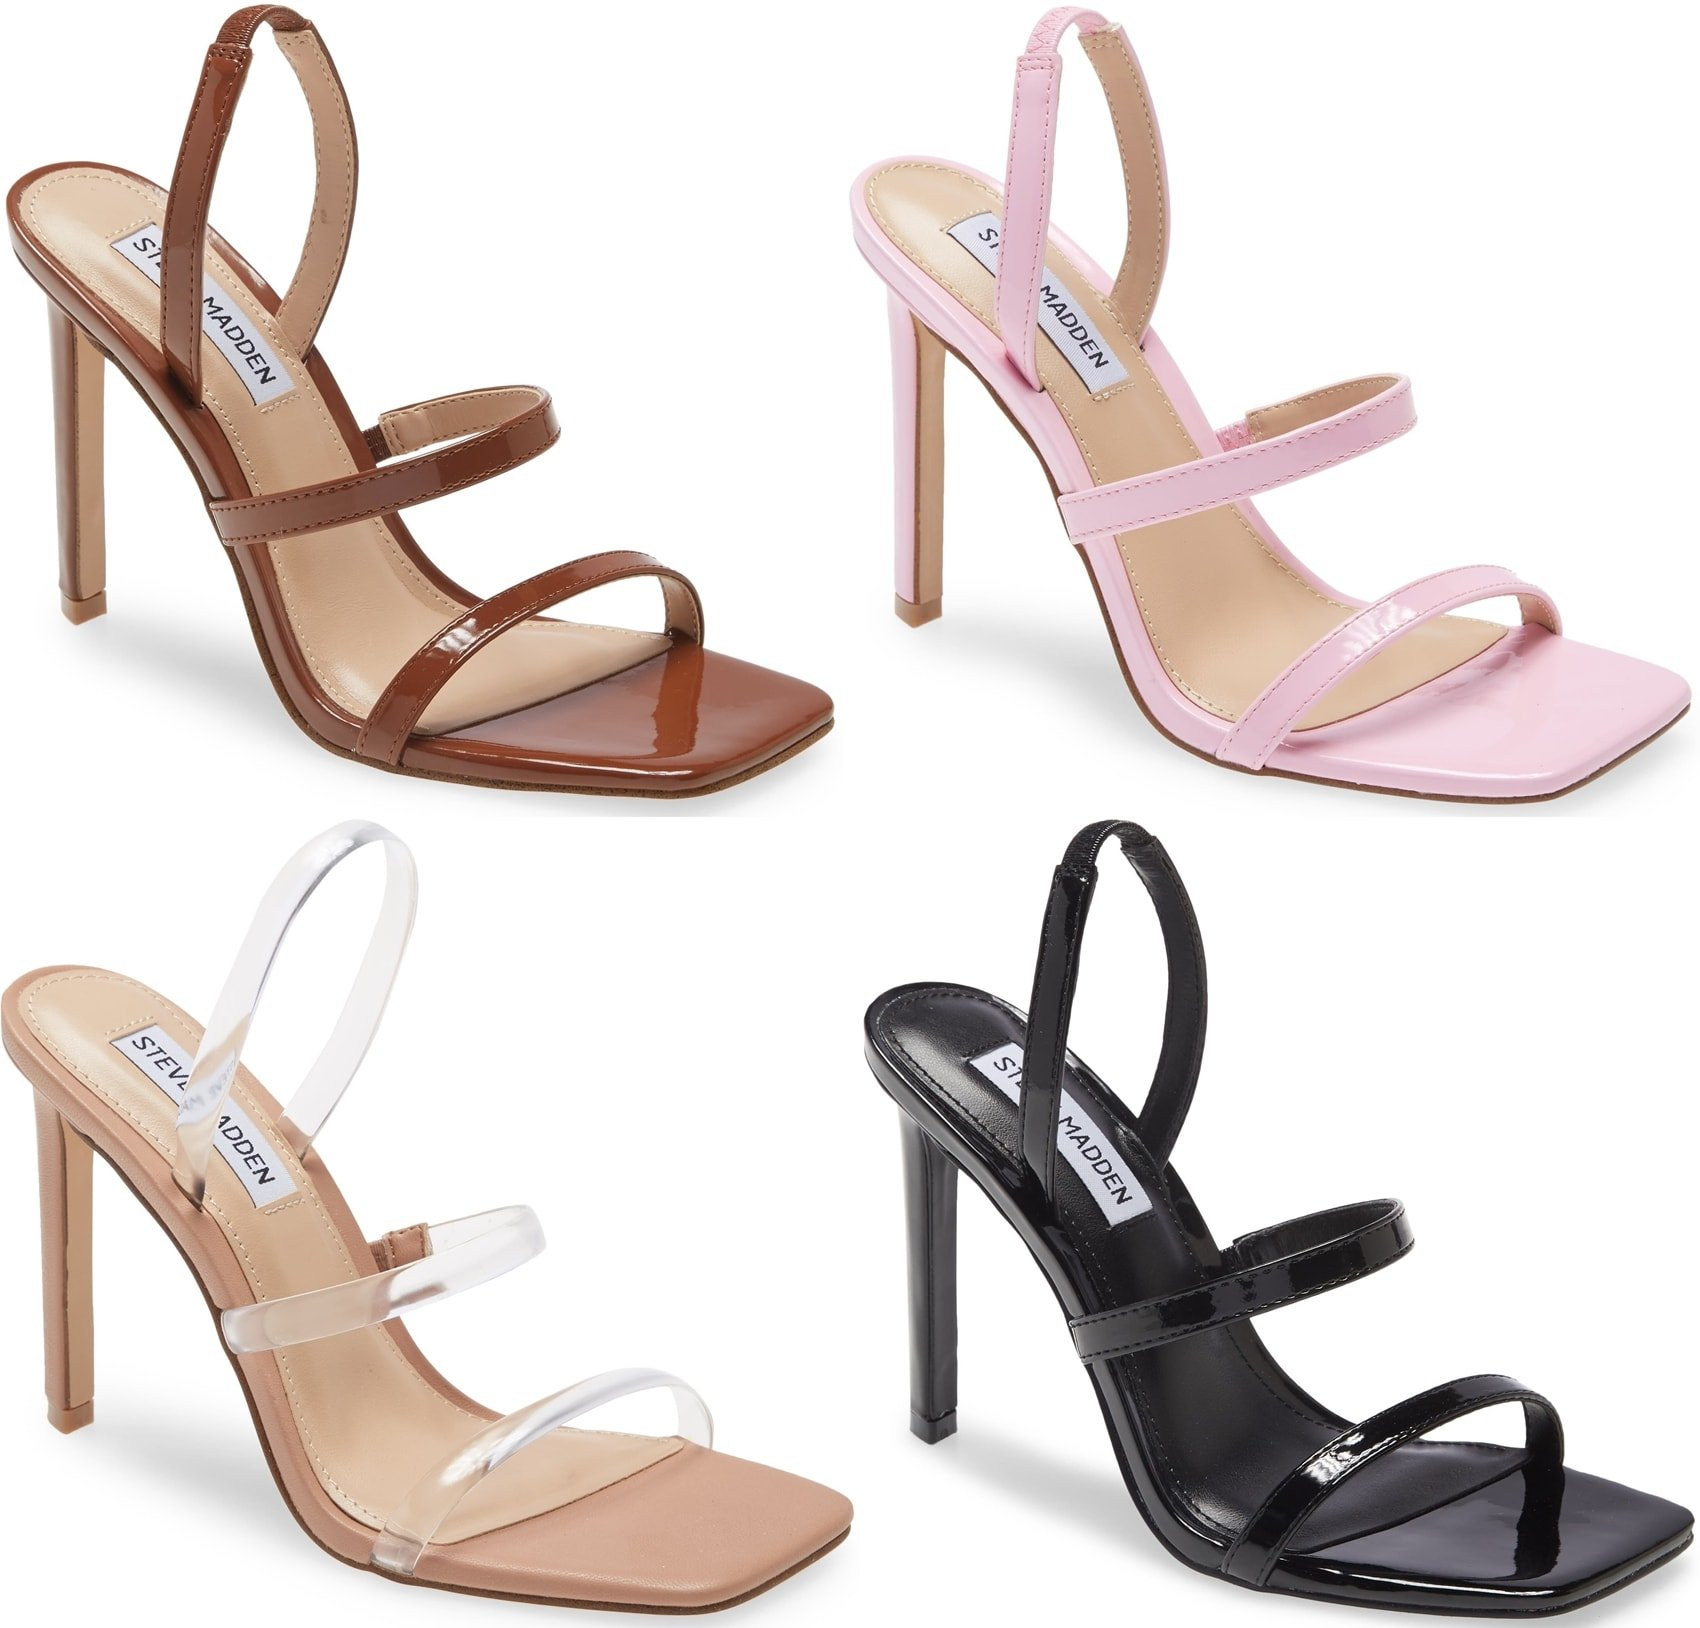 Slender straps grace the vamp of a striking, contemporary evening Gracey sandal from Steve Madden set on a tall, tapered heel and fashioned with an angular square toe